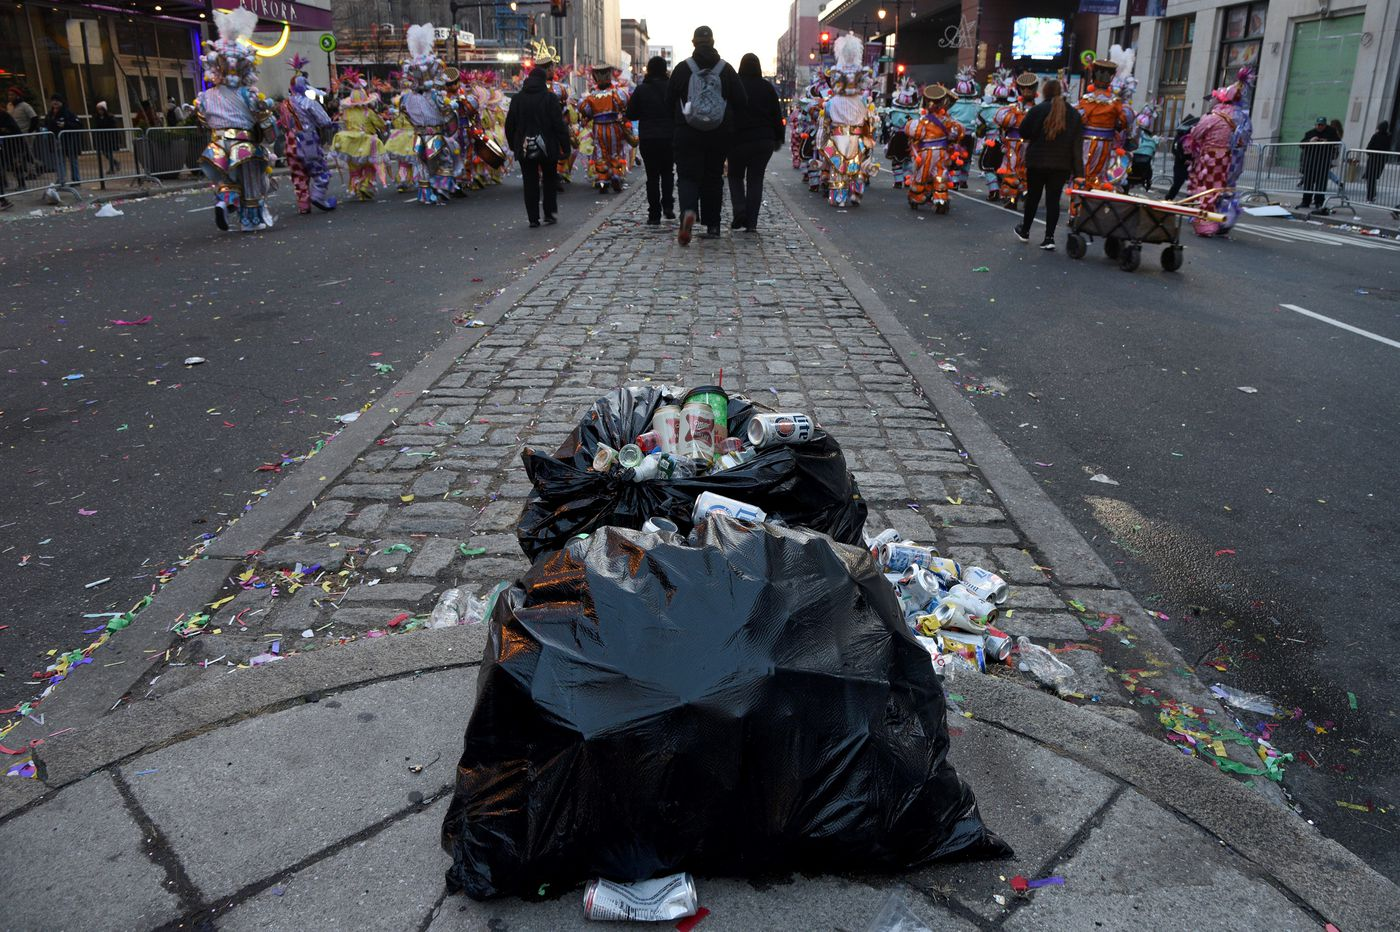 Philly spends $48 million a year to clean up litter, Pa. report finds